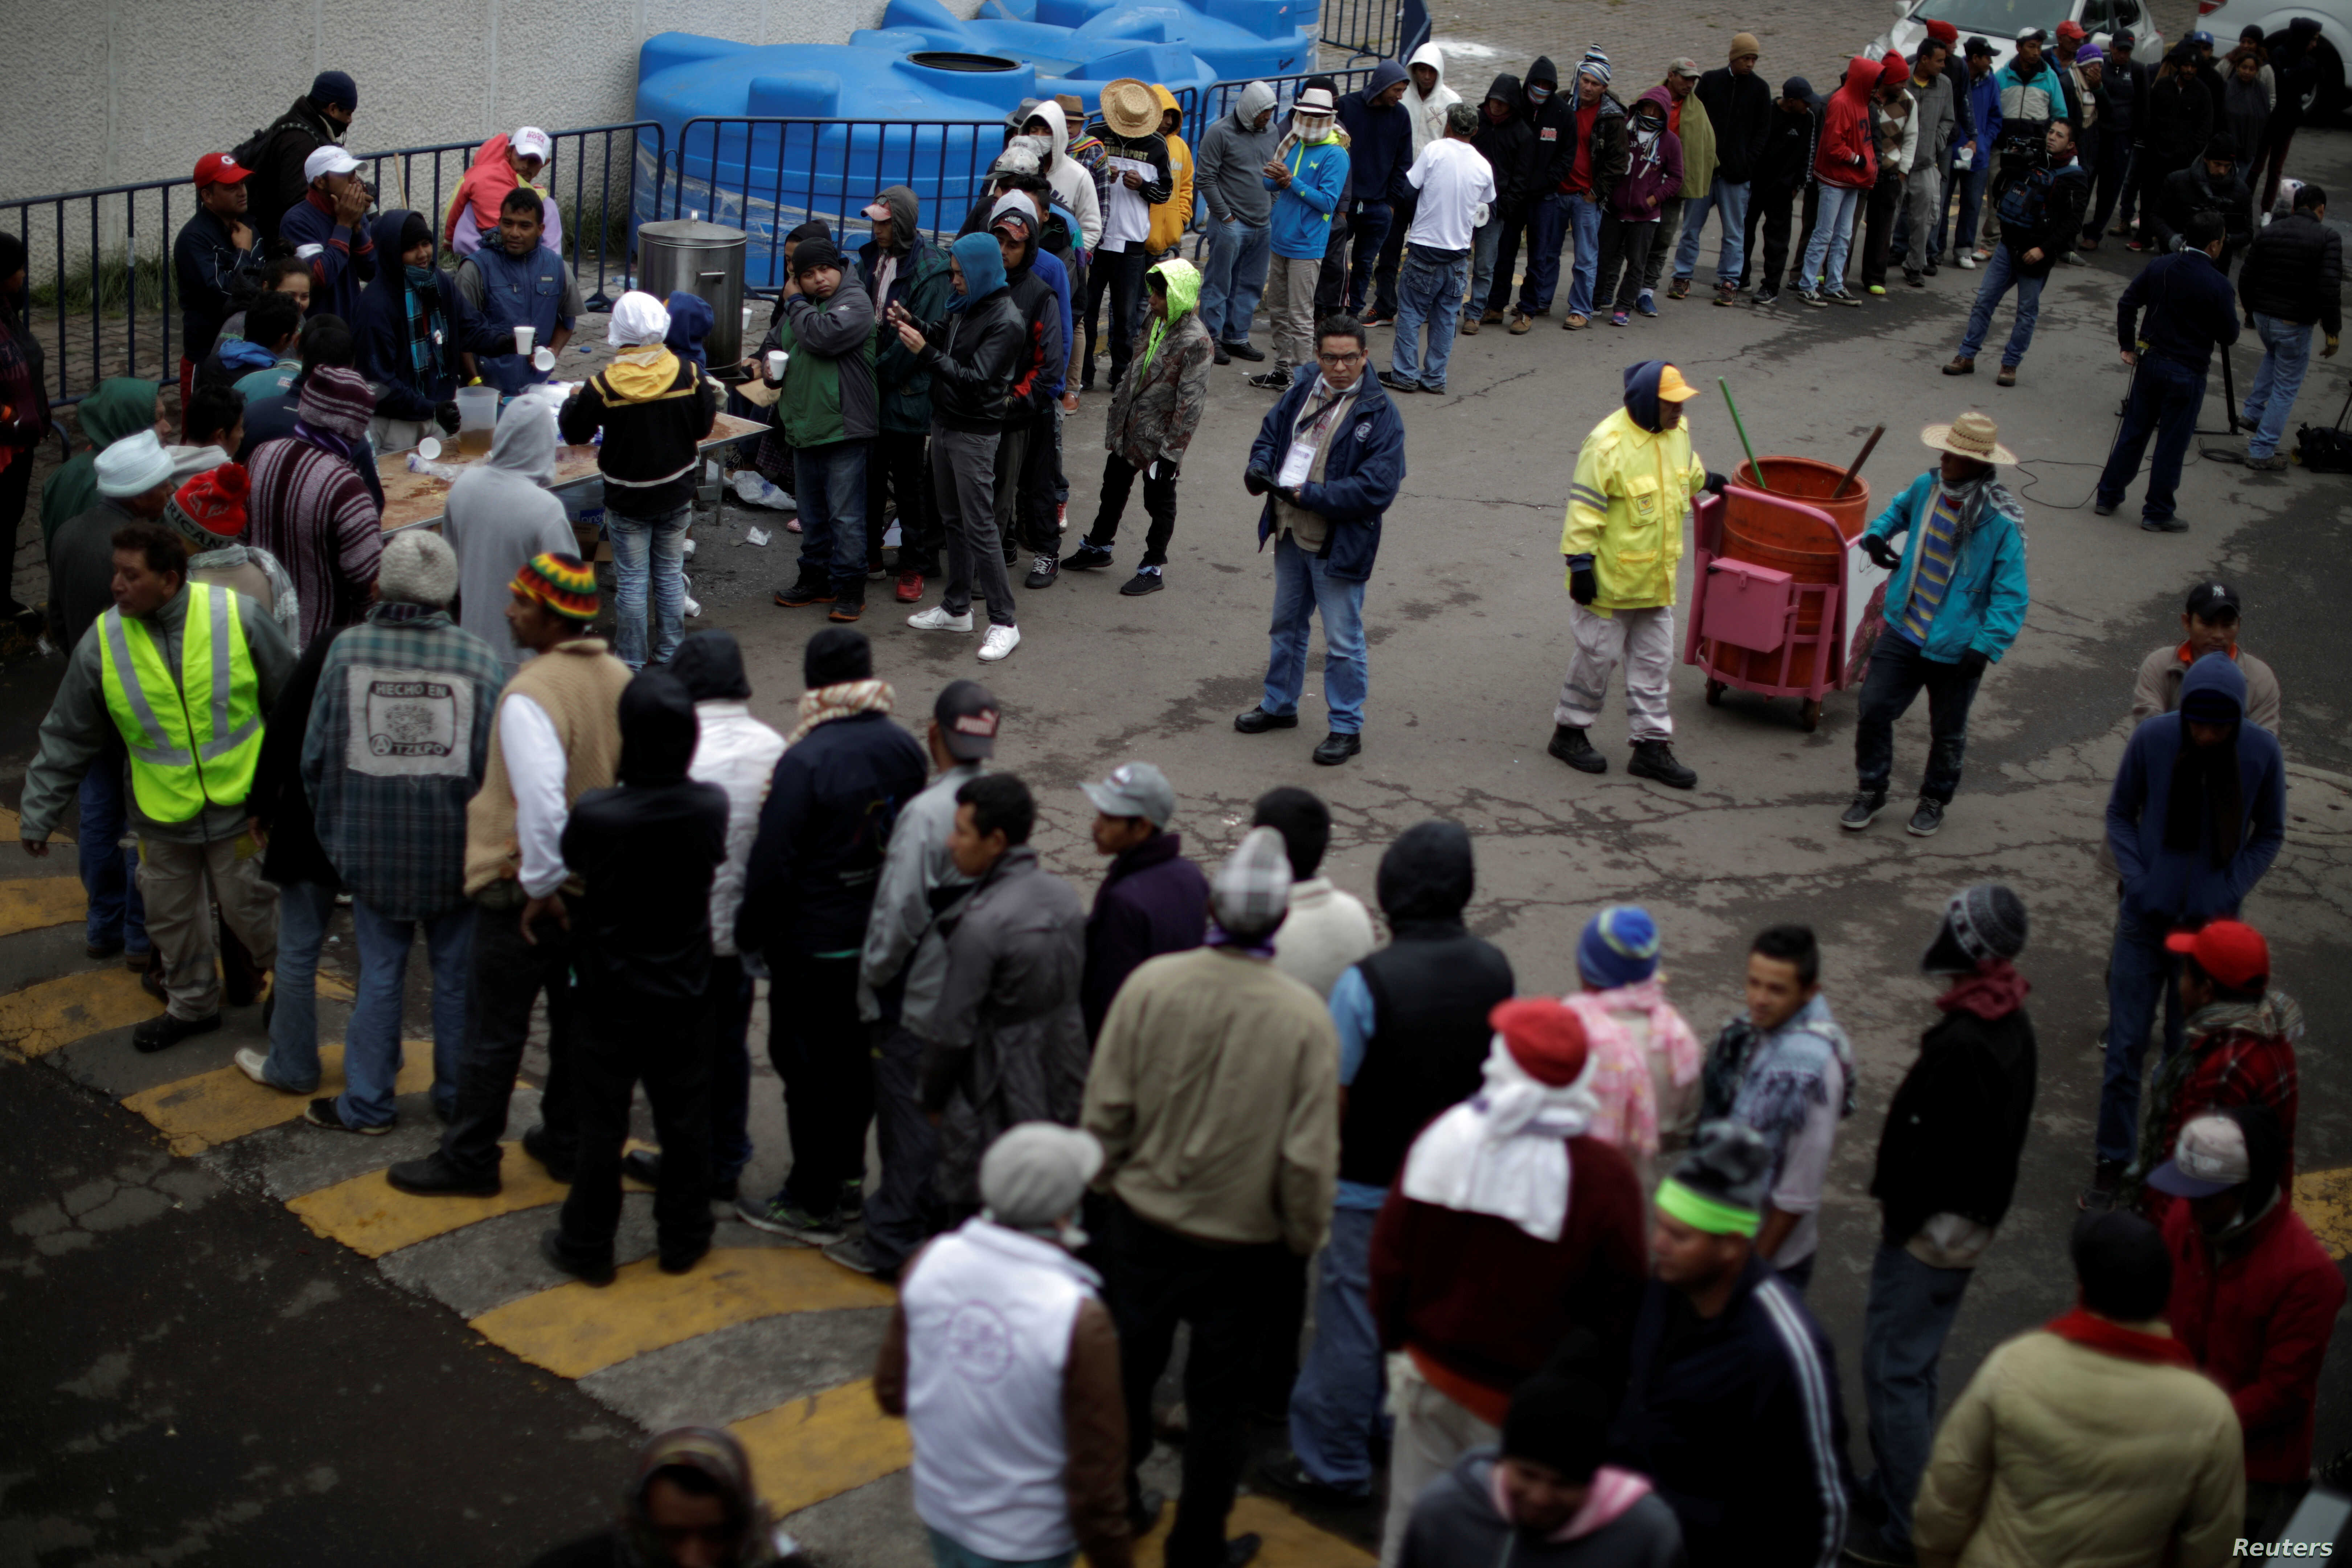 Migrants, part of a caravan of thousands traveling from Central America en route to the United States, line up for food in a makeshift camp in Mexico City, Mexico, Nov. 15, 2018.